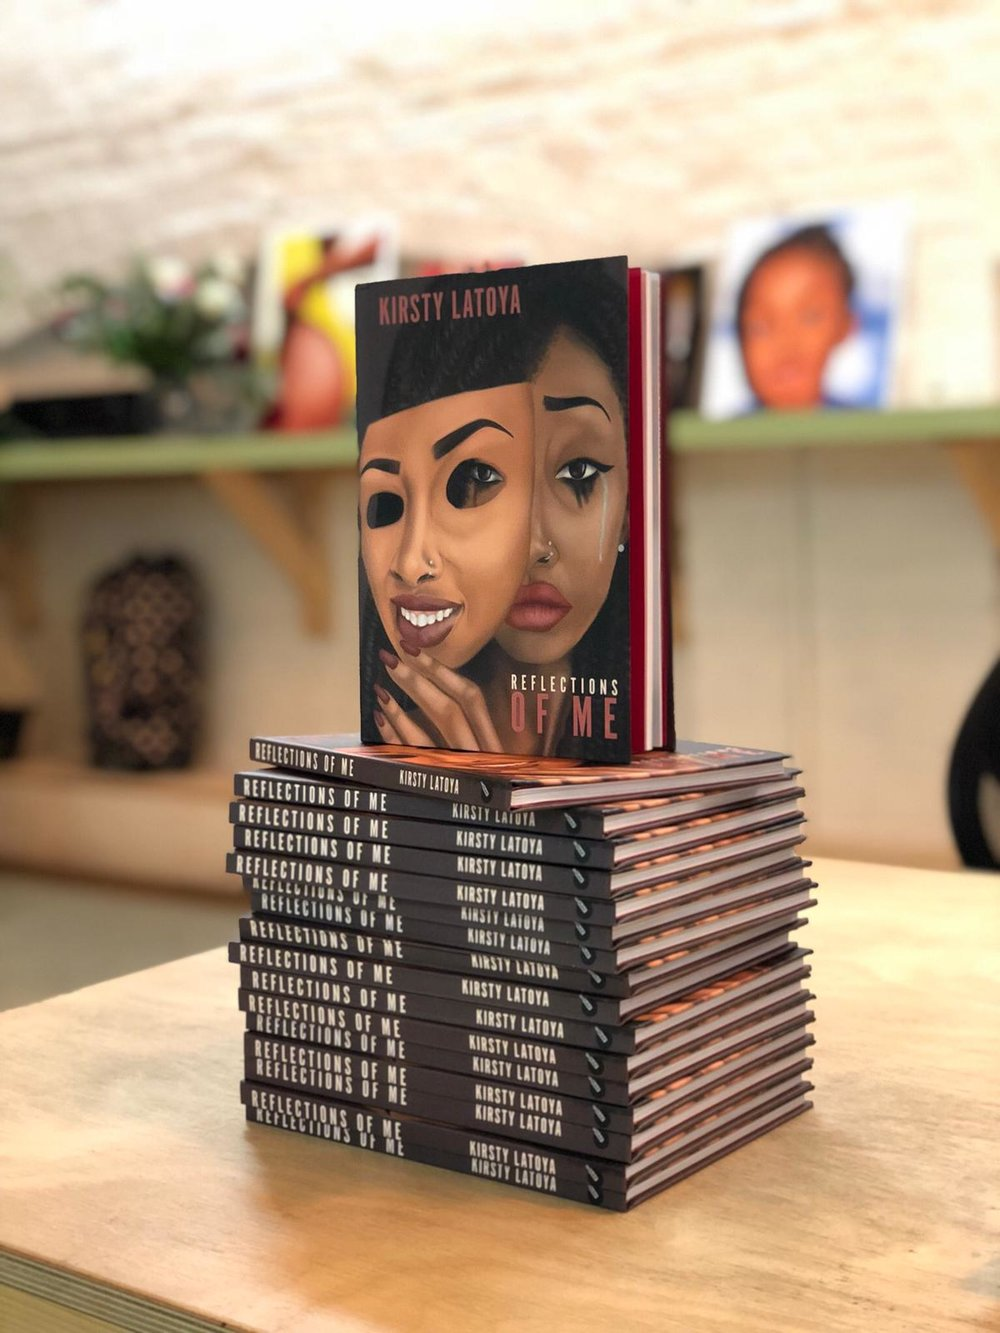 Reflections Of Me - My NEW book is finally here! The book is available in all good book retailers, as well as eBay and Amazon. You can also buy directly from my publishers hereReflections of Me is an art and poetry book by 27-year-old emerging artist Kirsty Latoya, from South London. The book will be made up of four sections – mental health, identity, womanhood and love. The images are accompanied by original poems from the artist.